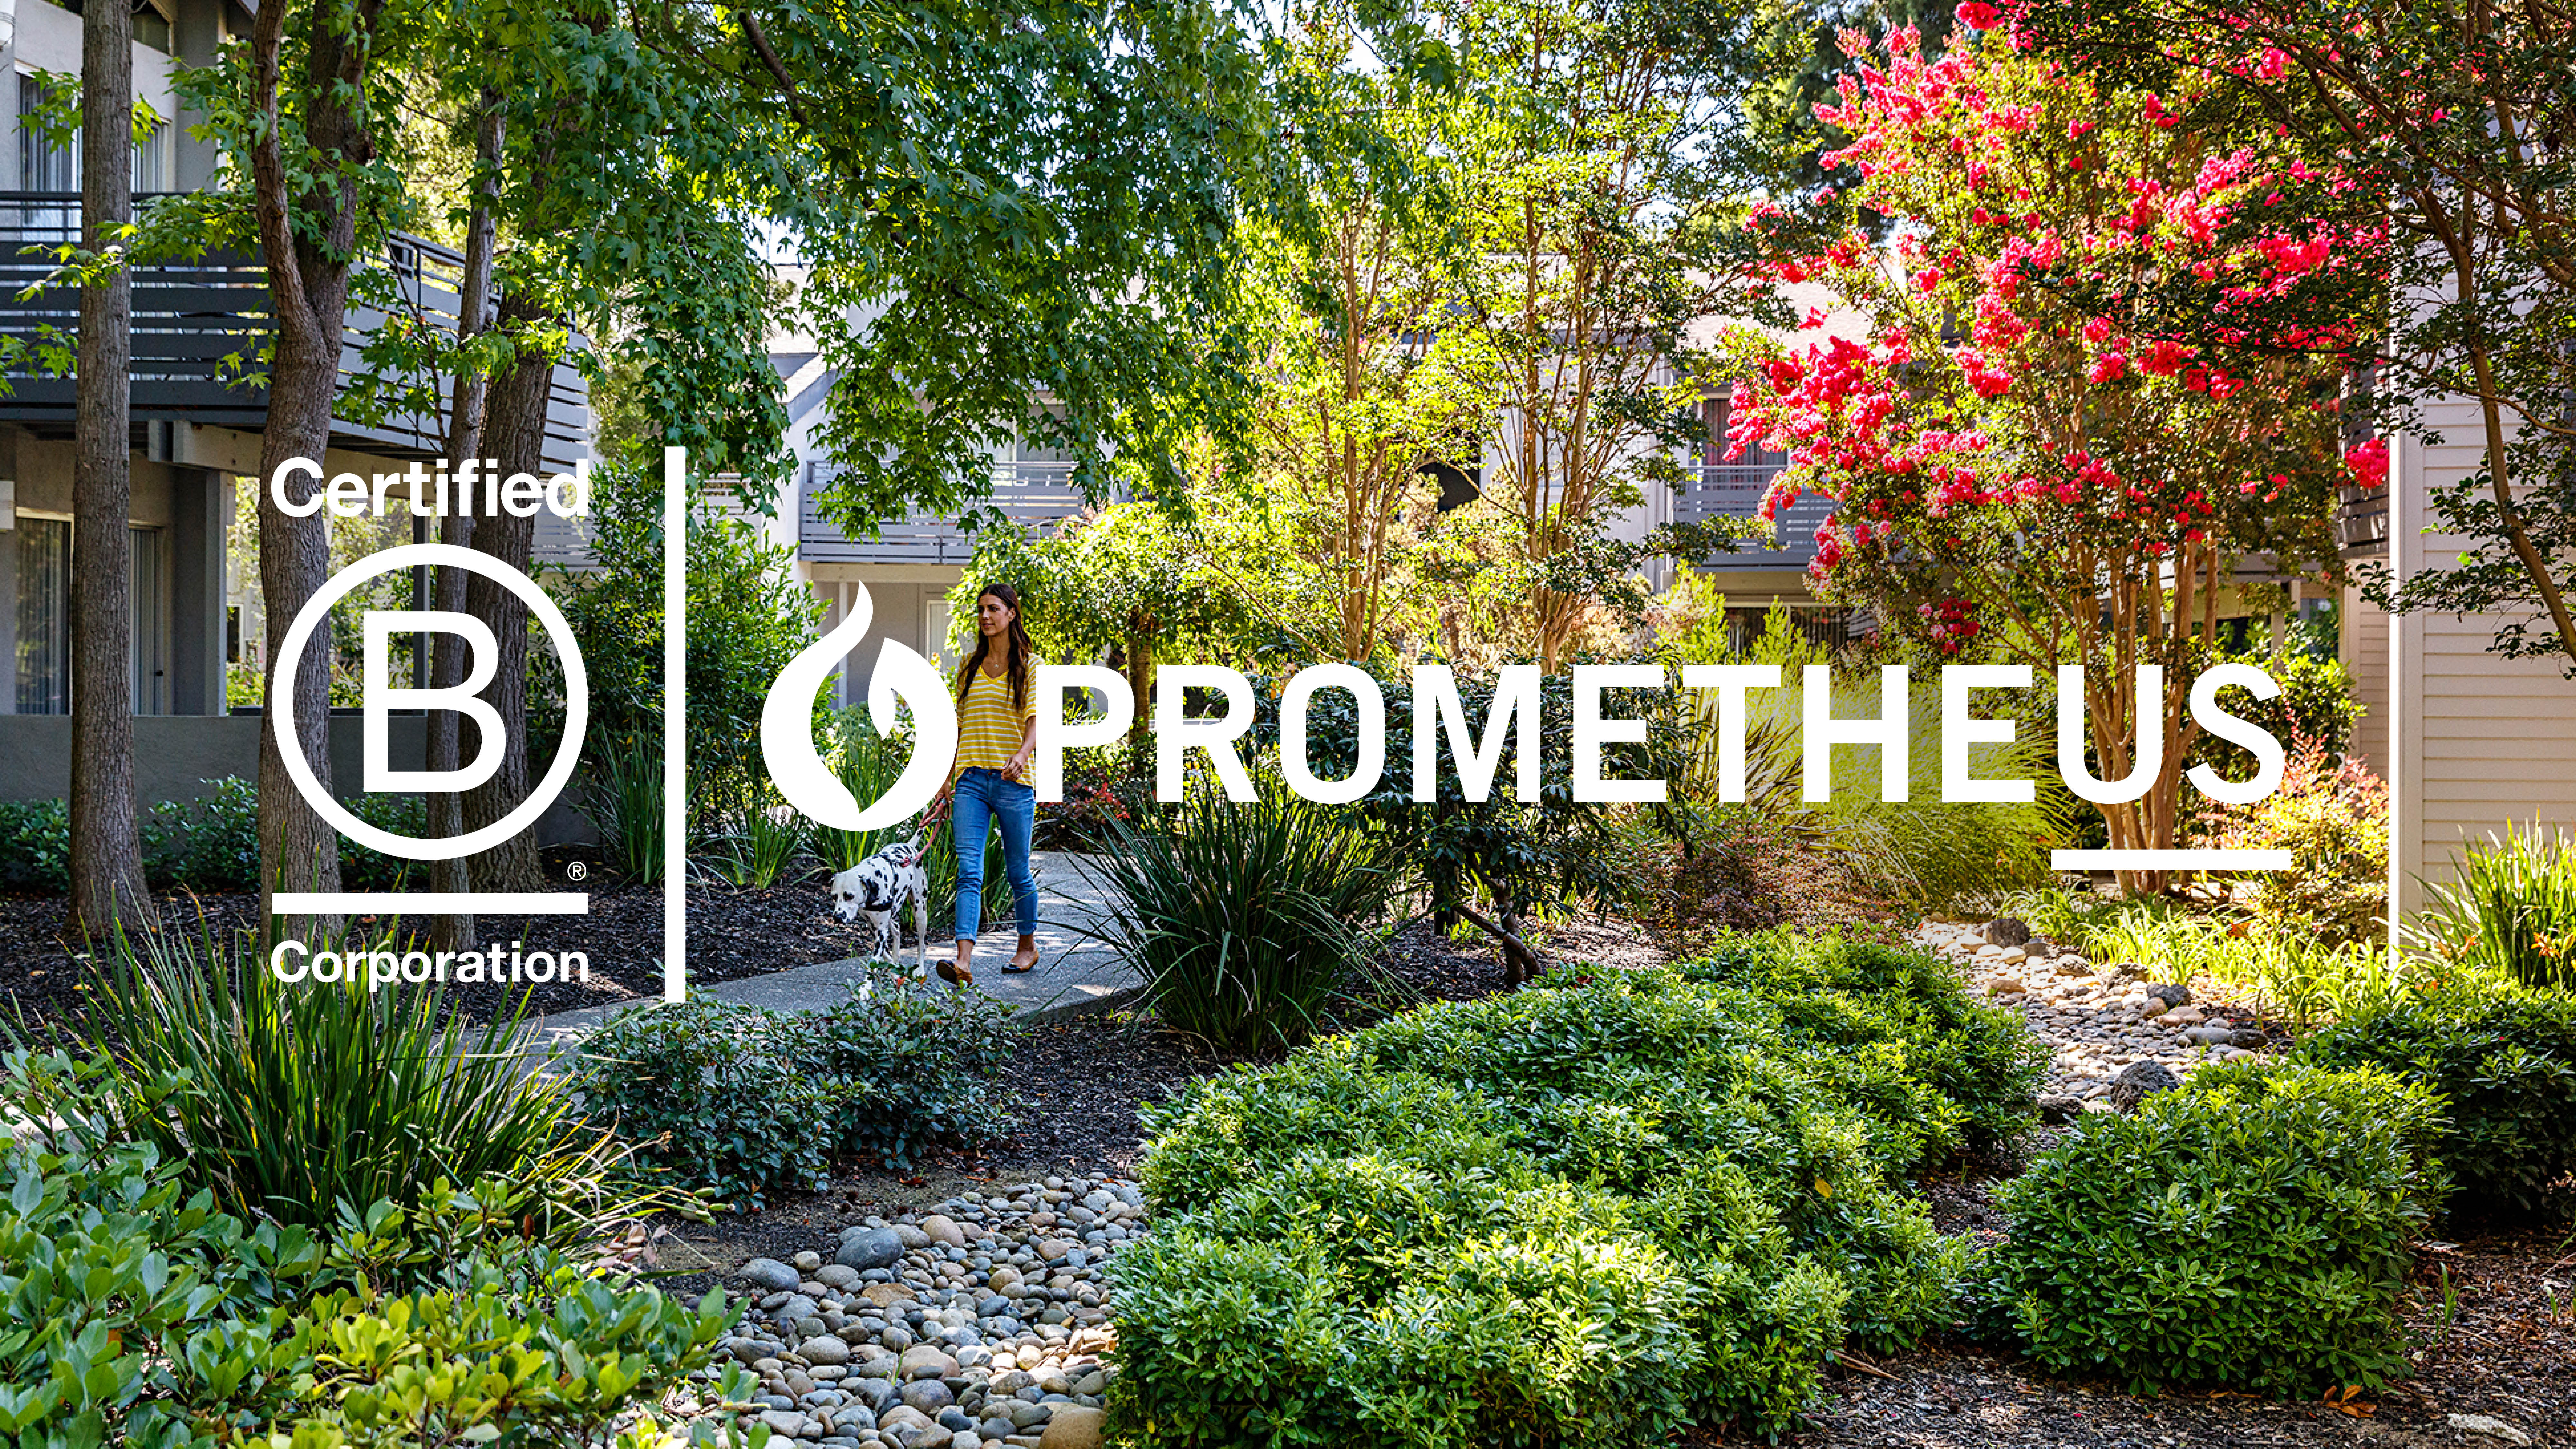 Prometheus Recognized and Designated A Certified B Corporation